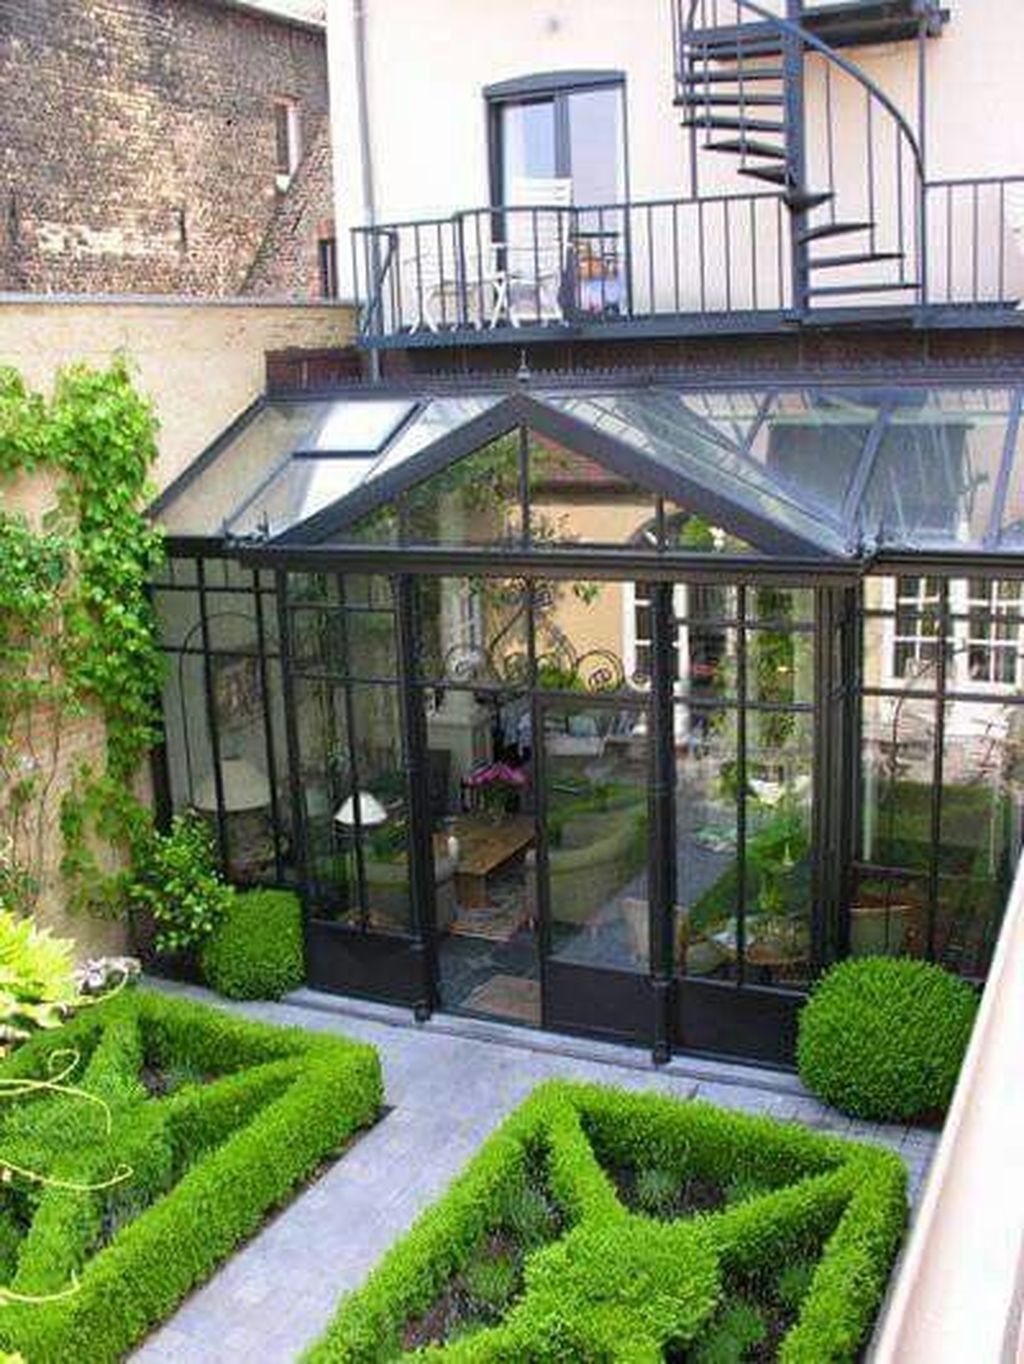 40+ Glass Ceiling Design and Ideas is part of Garden - The ceiling doesn't appear breakable  Truly, there's no glass ceiling when you look right through it  A glass ceiling is truly a set of stereotypes which are in contradiction together  …